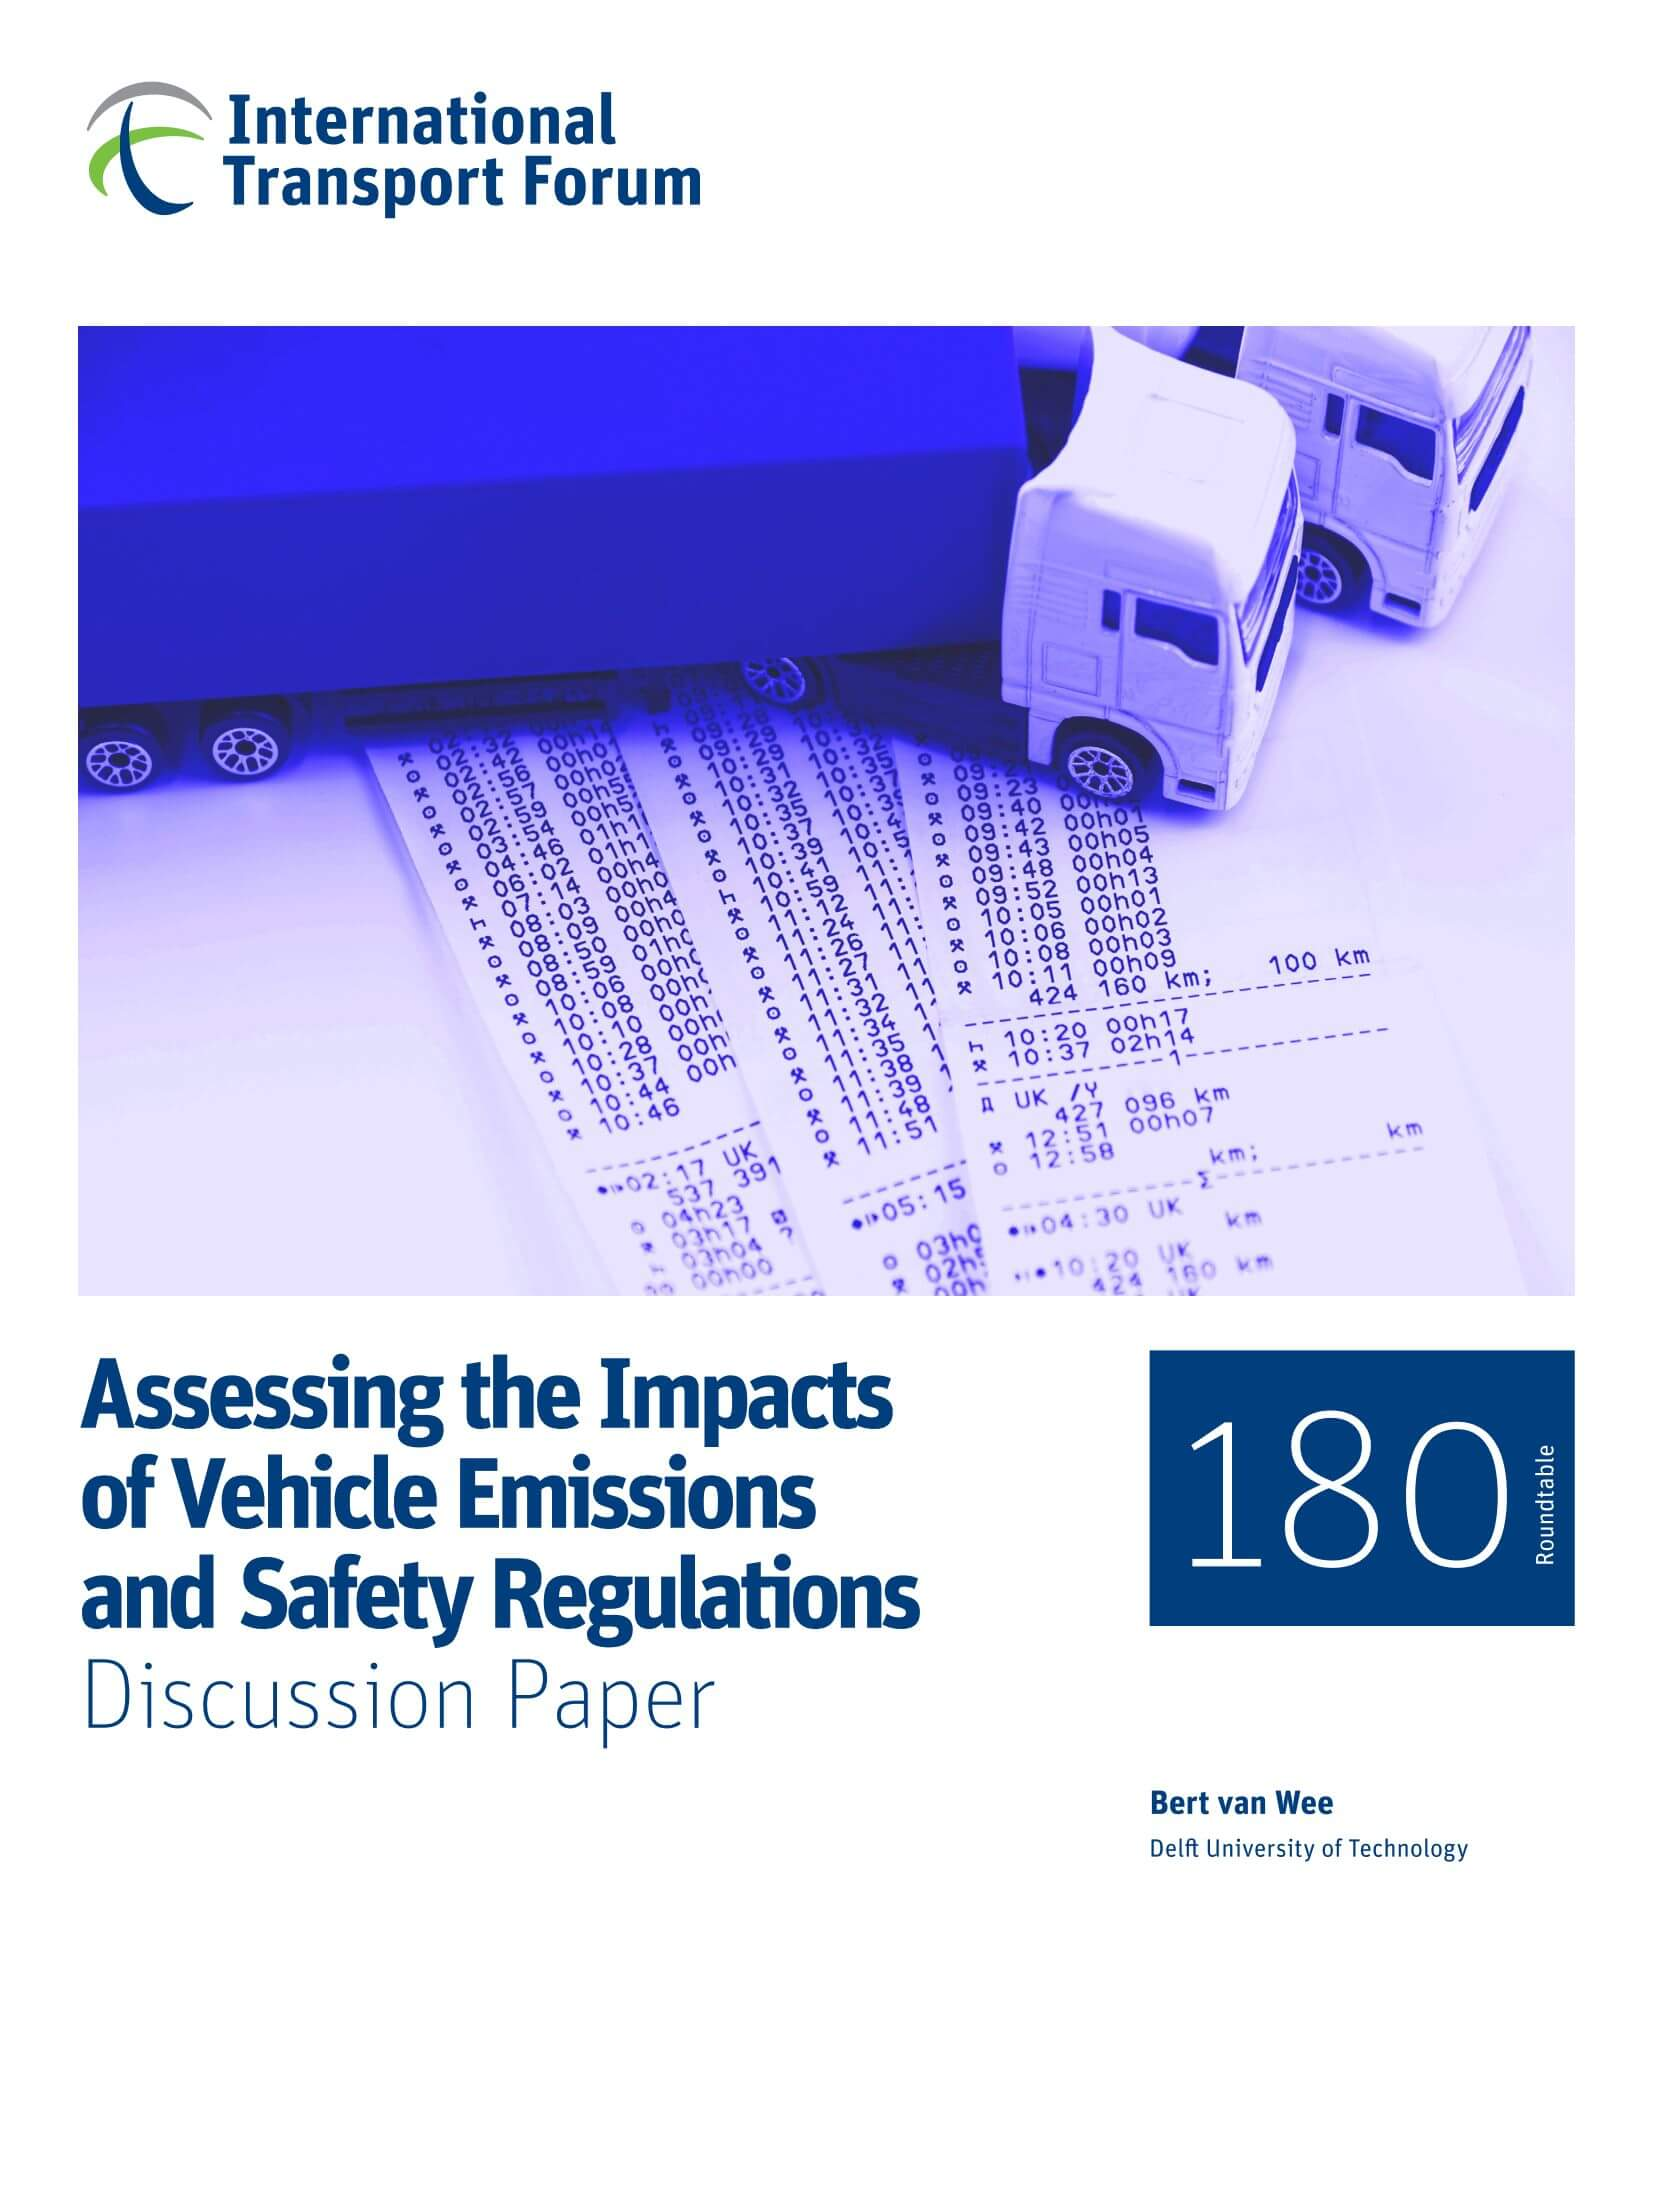 Assessing the Impacts of Vehicle Emissions and Safety Regulations - Discussion Paper